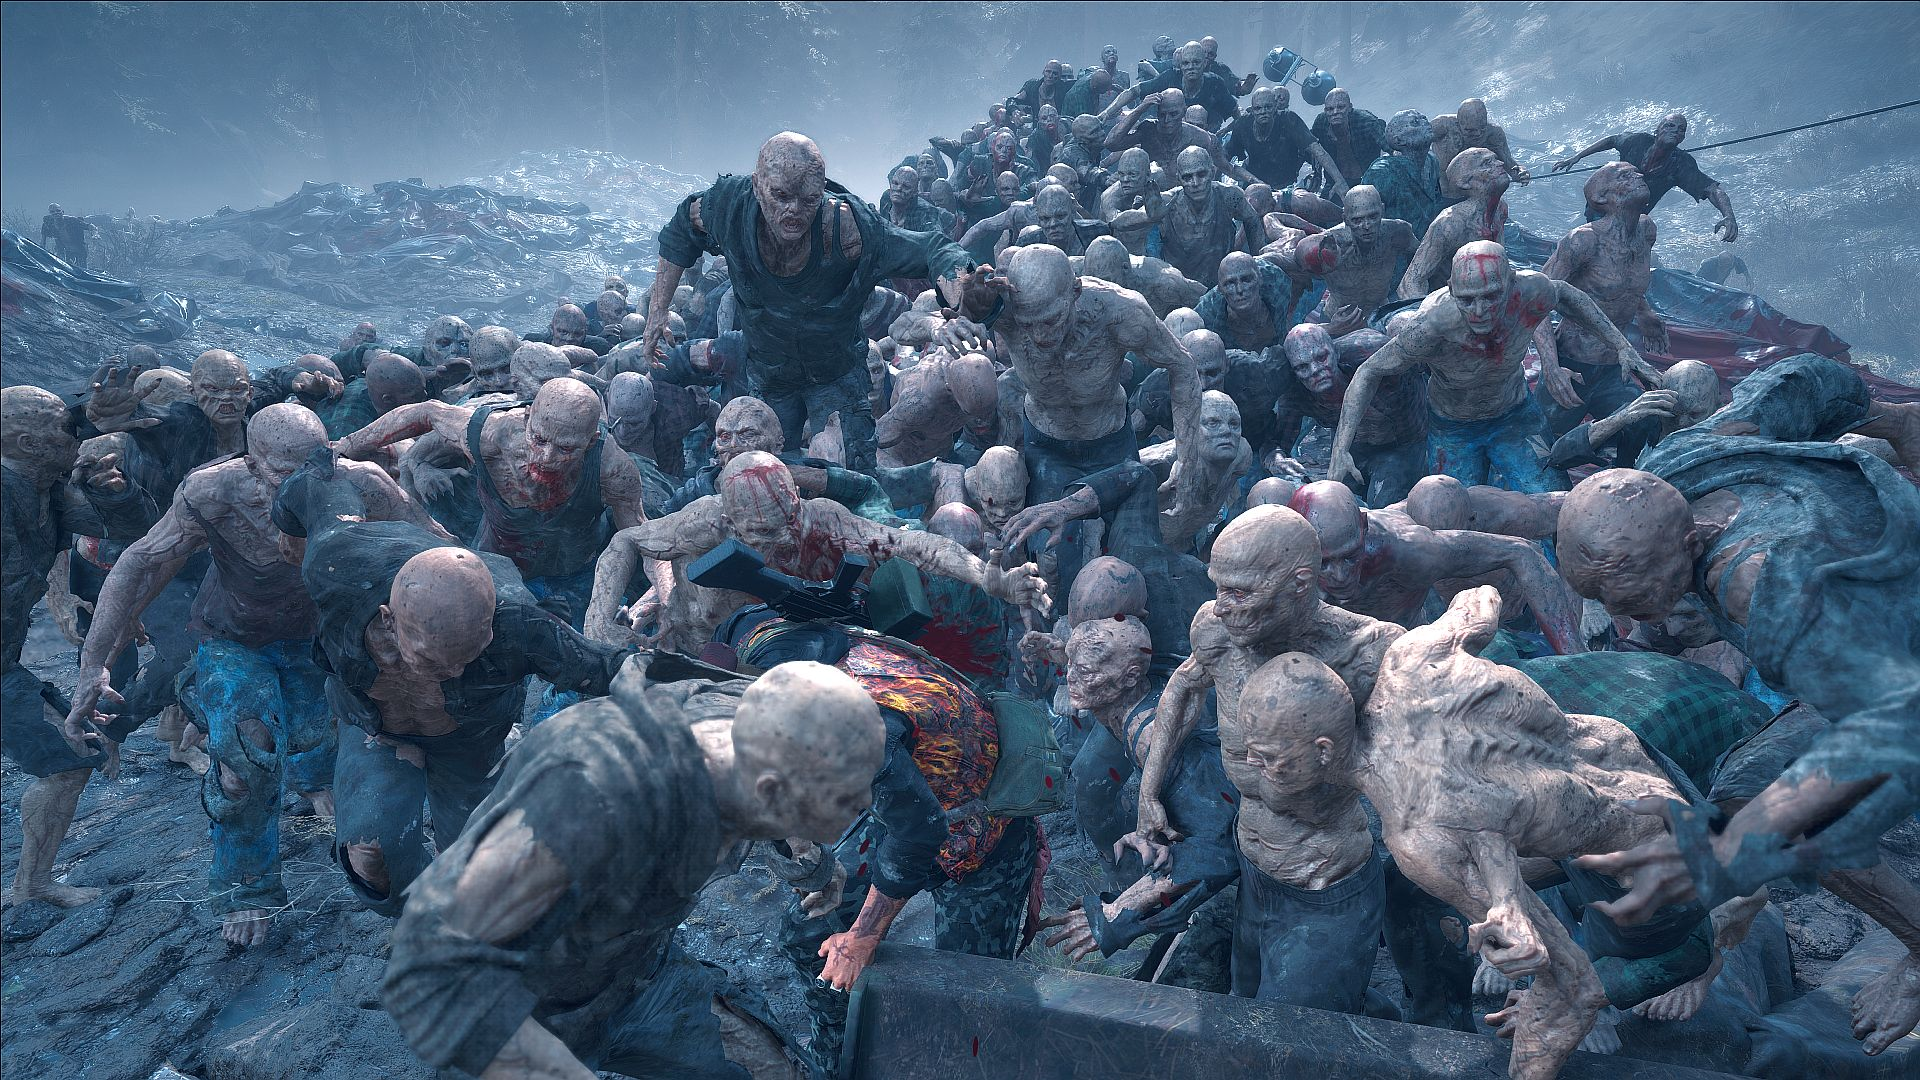 This Days Gone mod makes zombie hordes truly enormous